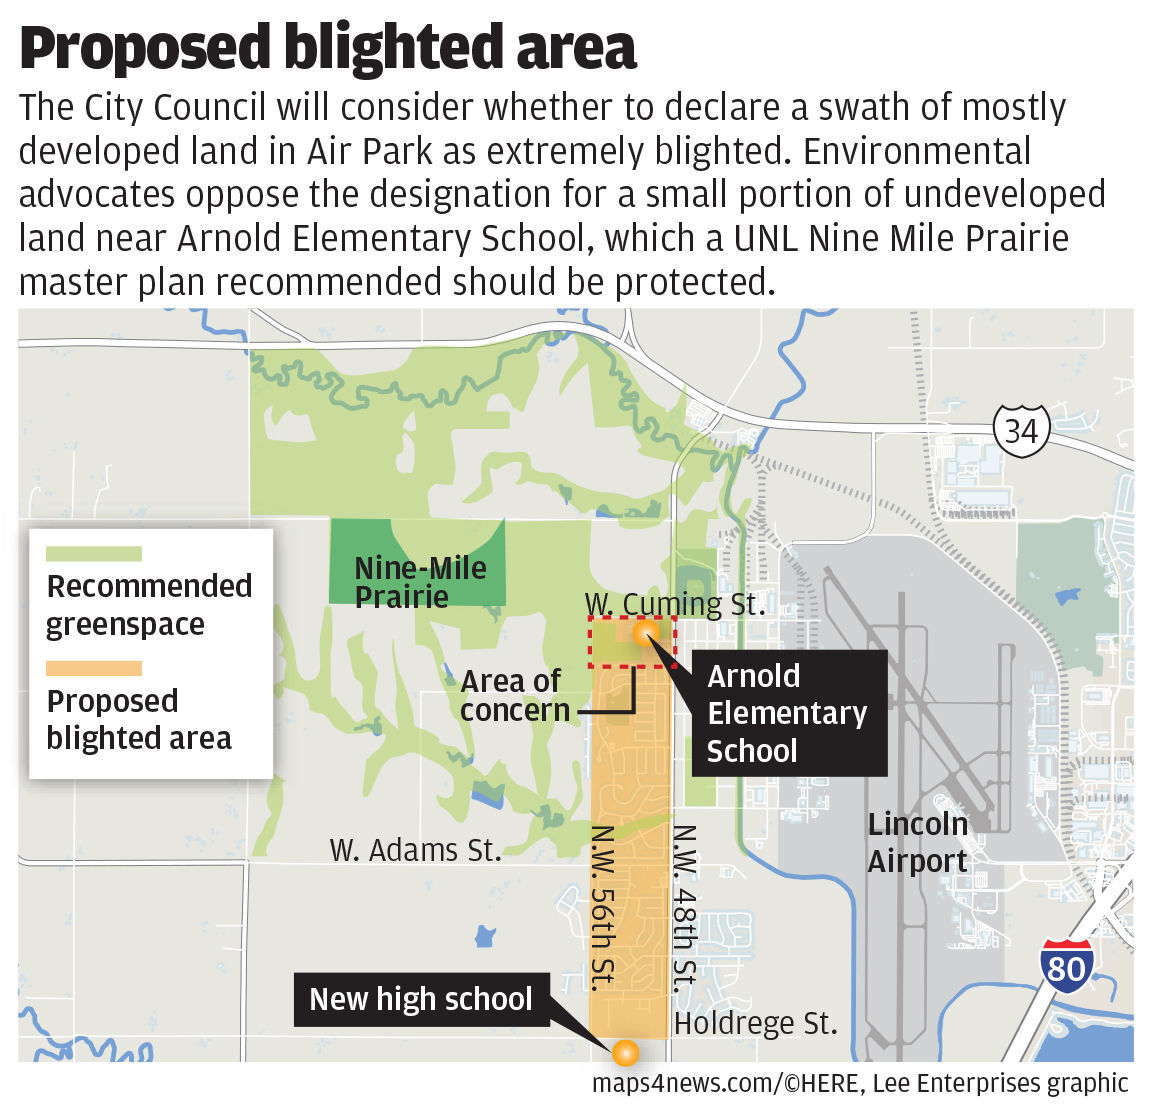 Proposed blighted area in Air Park